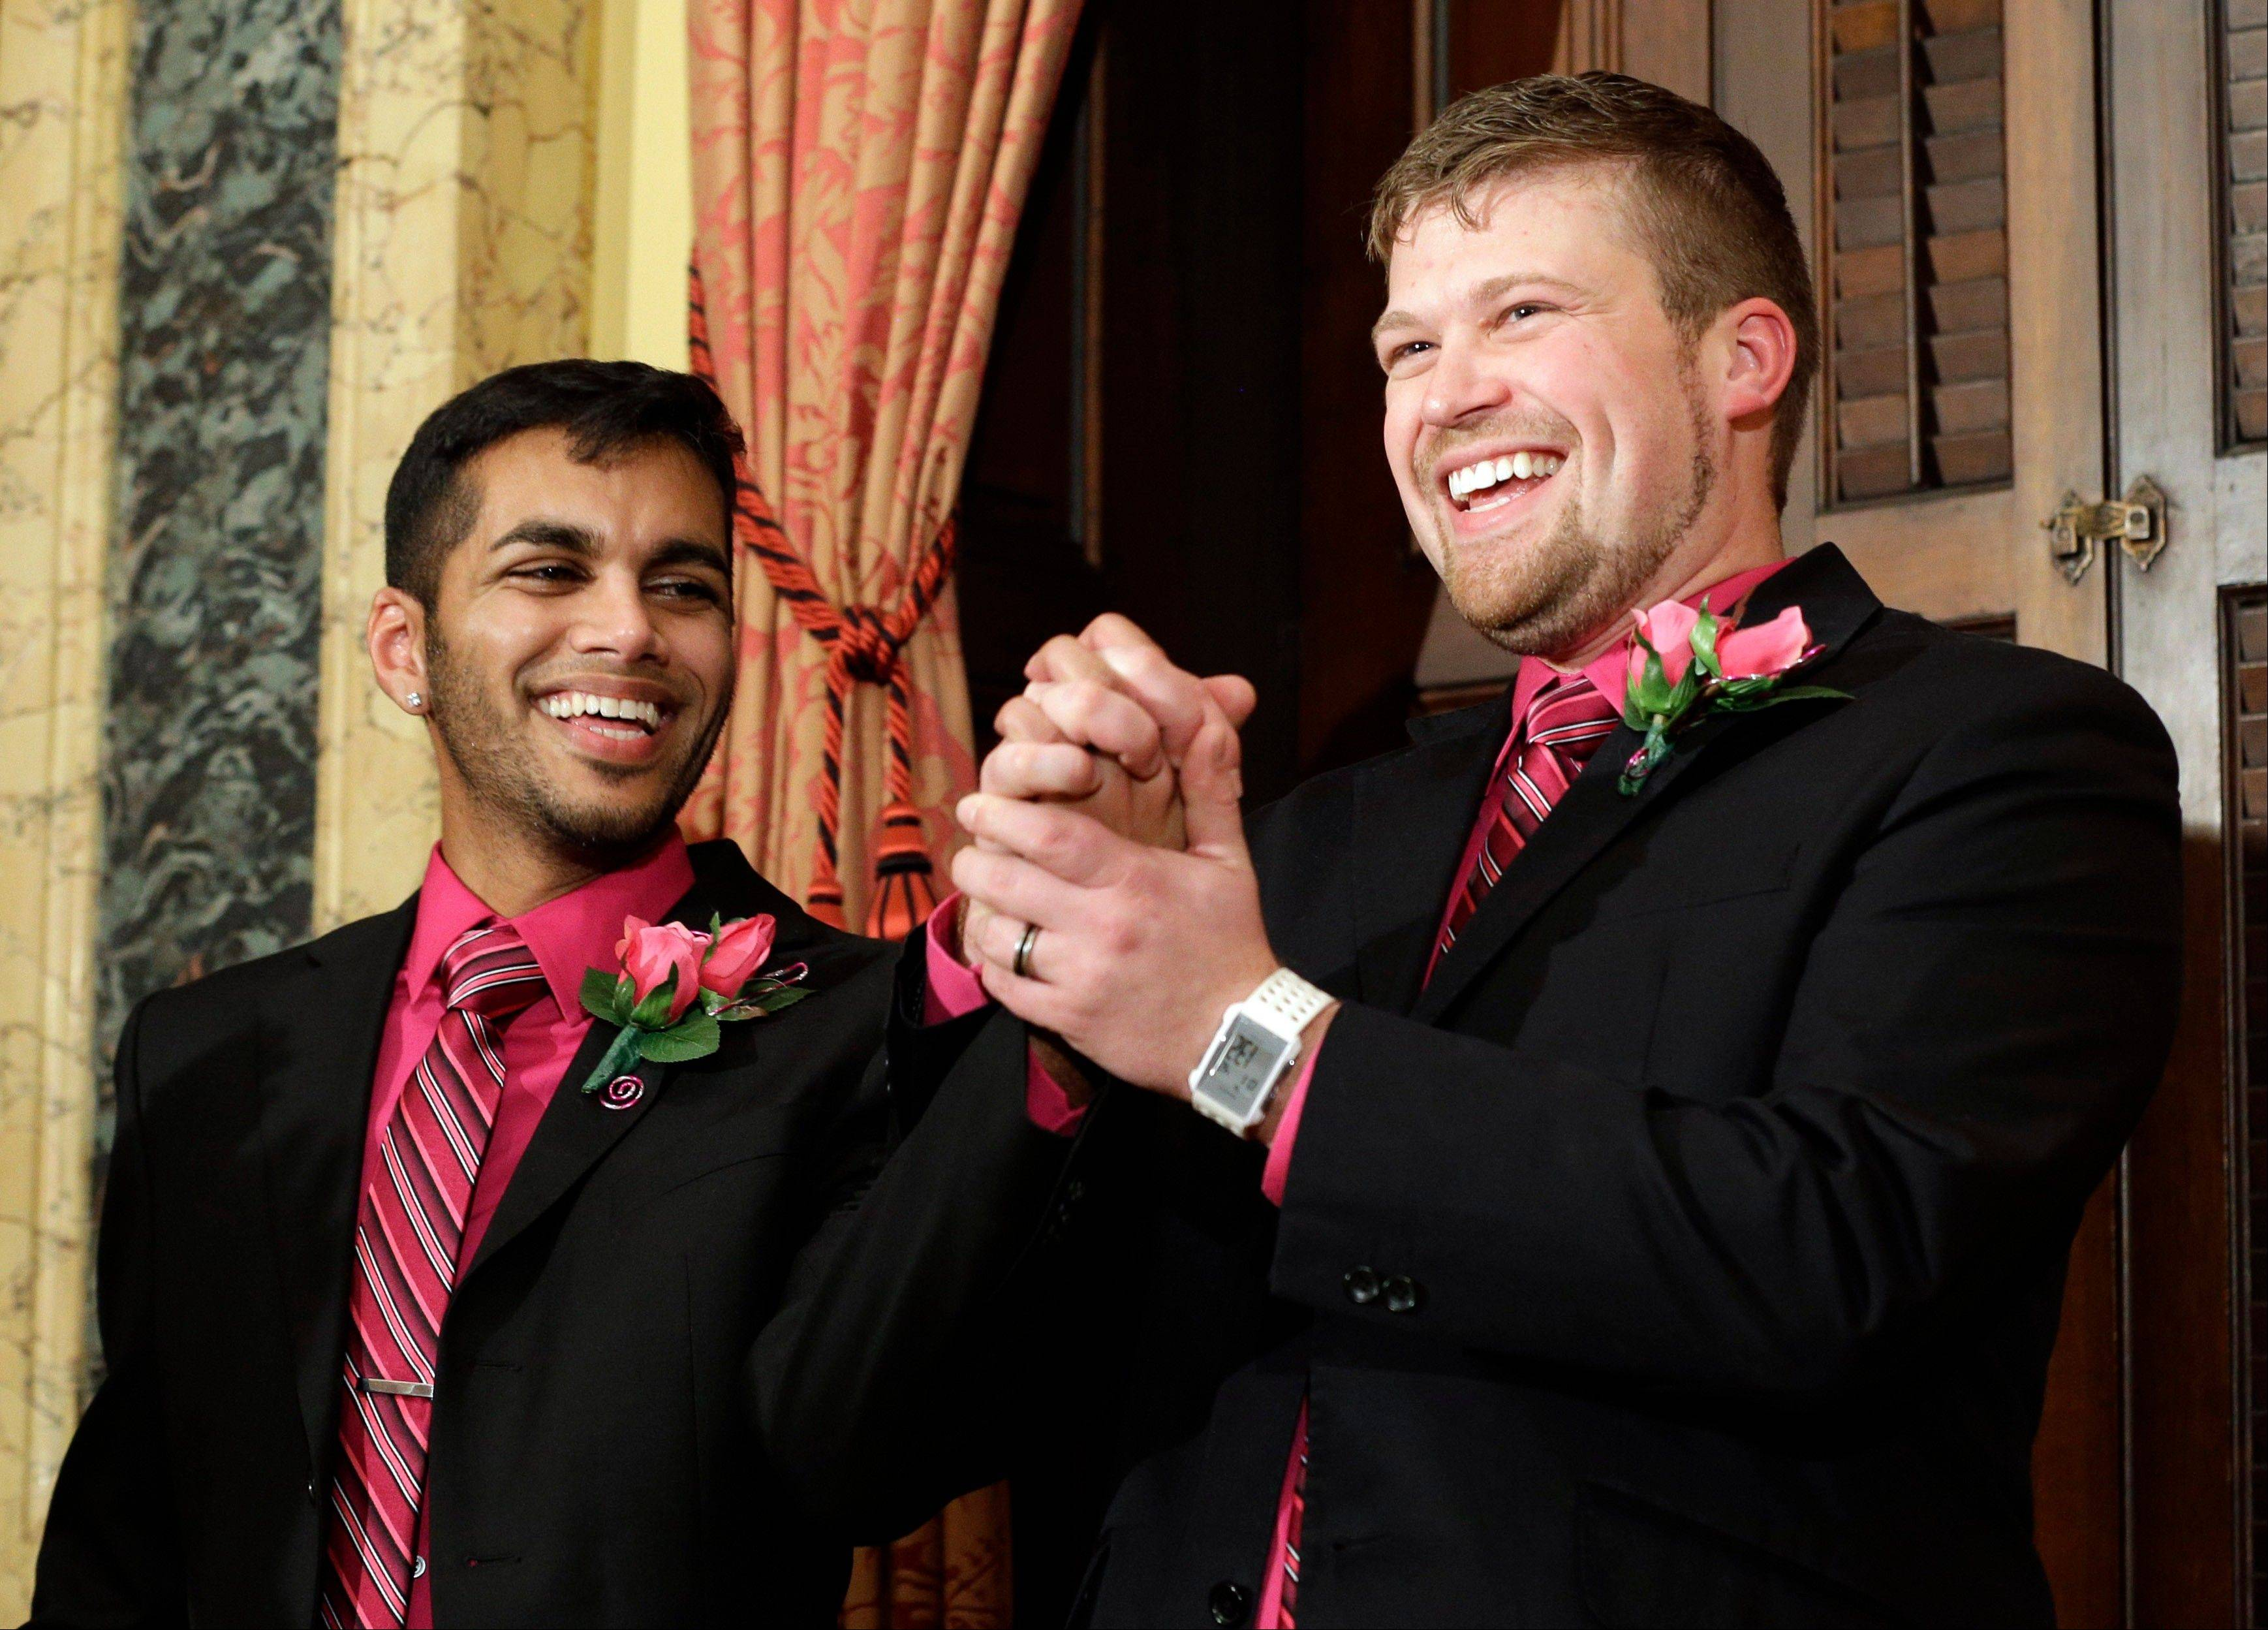 Shehan Welihinda, left, and Ryan Wilson react after participating in a marriage ceremony at City Hall in Baltimore Tuesday.